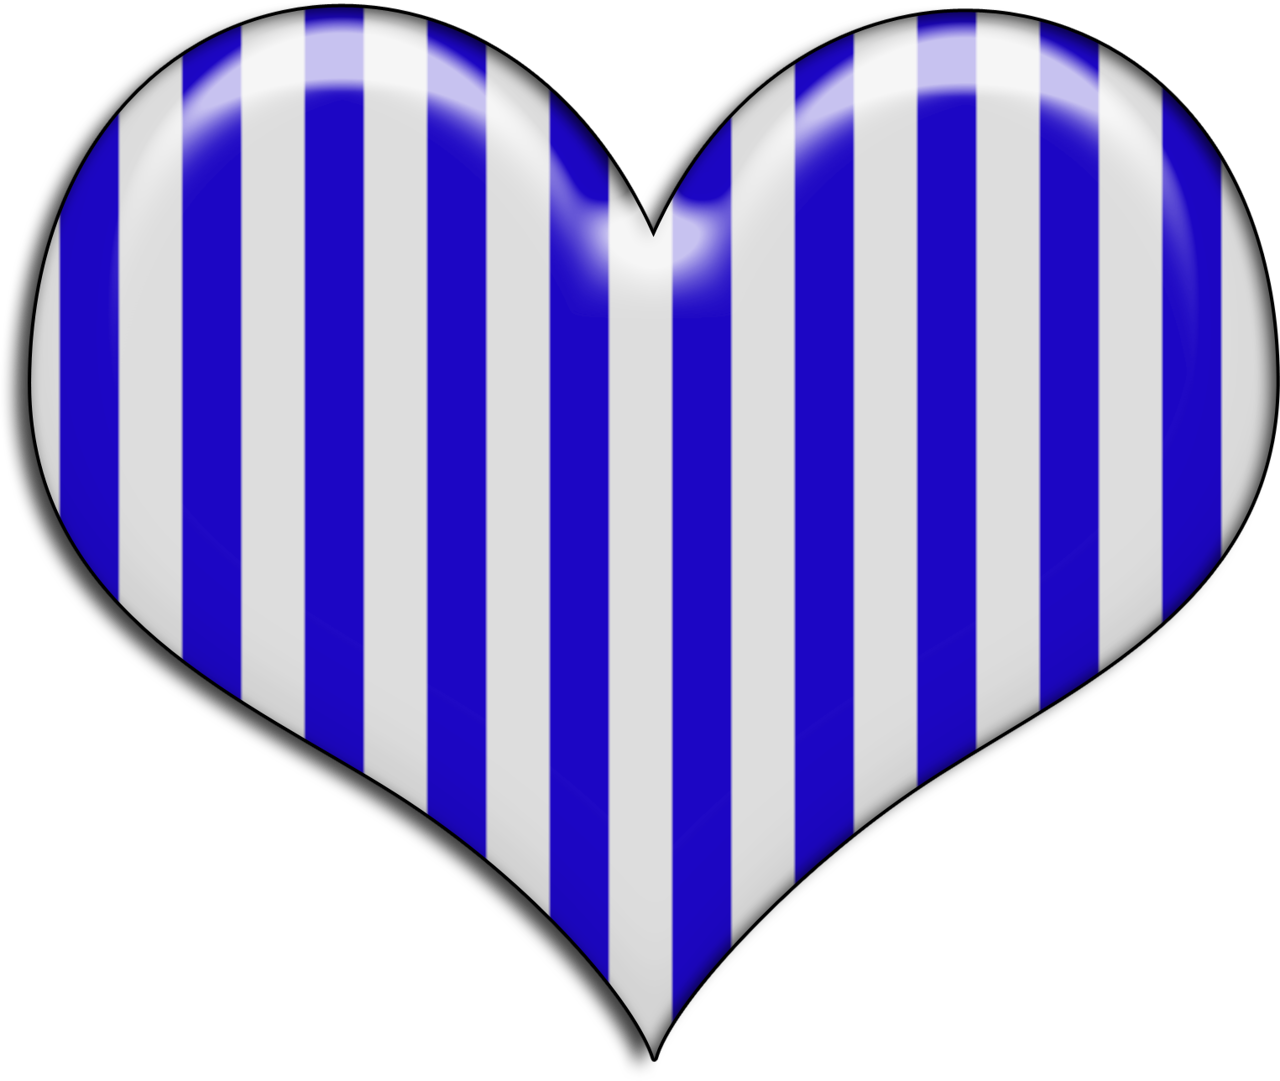 hight resolution of a blue and white striped heart